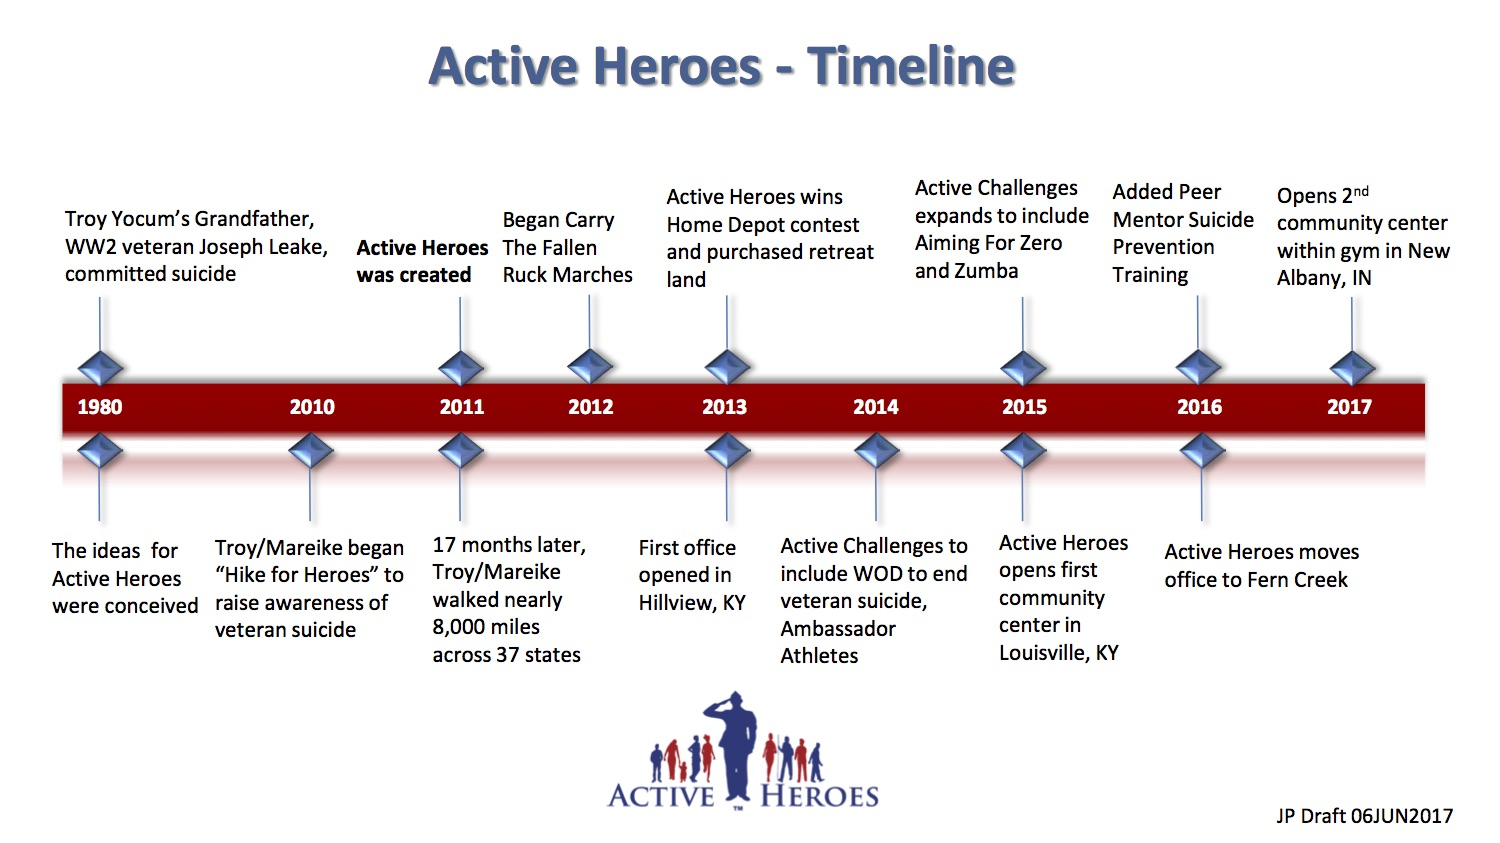 The Active Heroes Foundation Hosts National Activities, Peer Support and Resources for Military Heroes and Their Families.